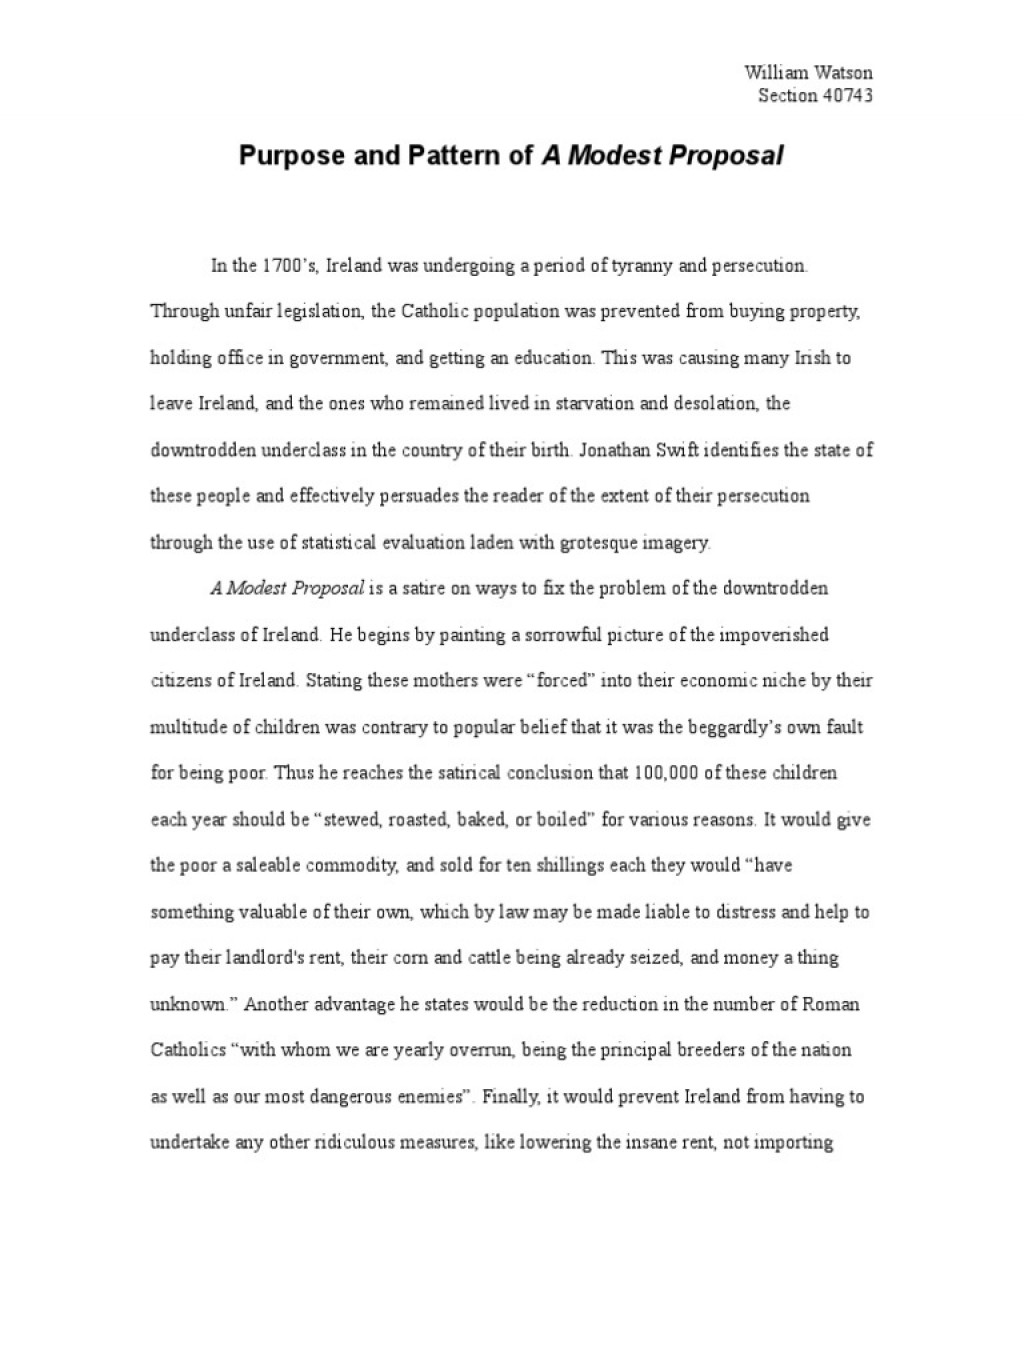 029 Satirical Essay Topics Example Worksheet Modest Proposal Answers Grass Frightening Prompts Satire On Obesity Good Large